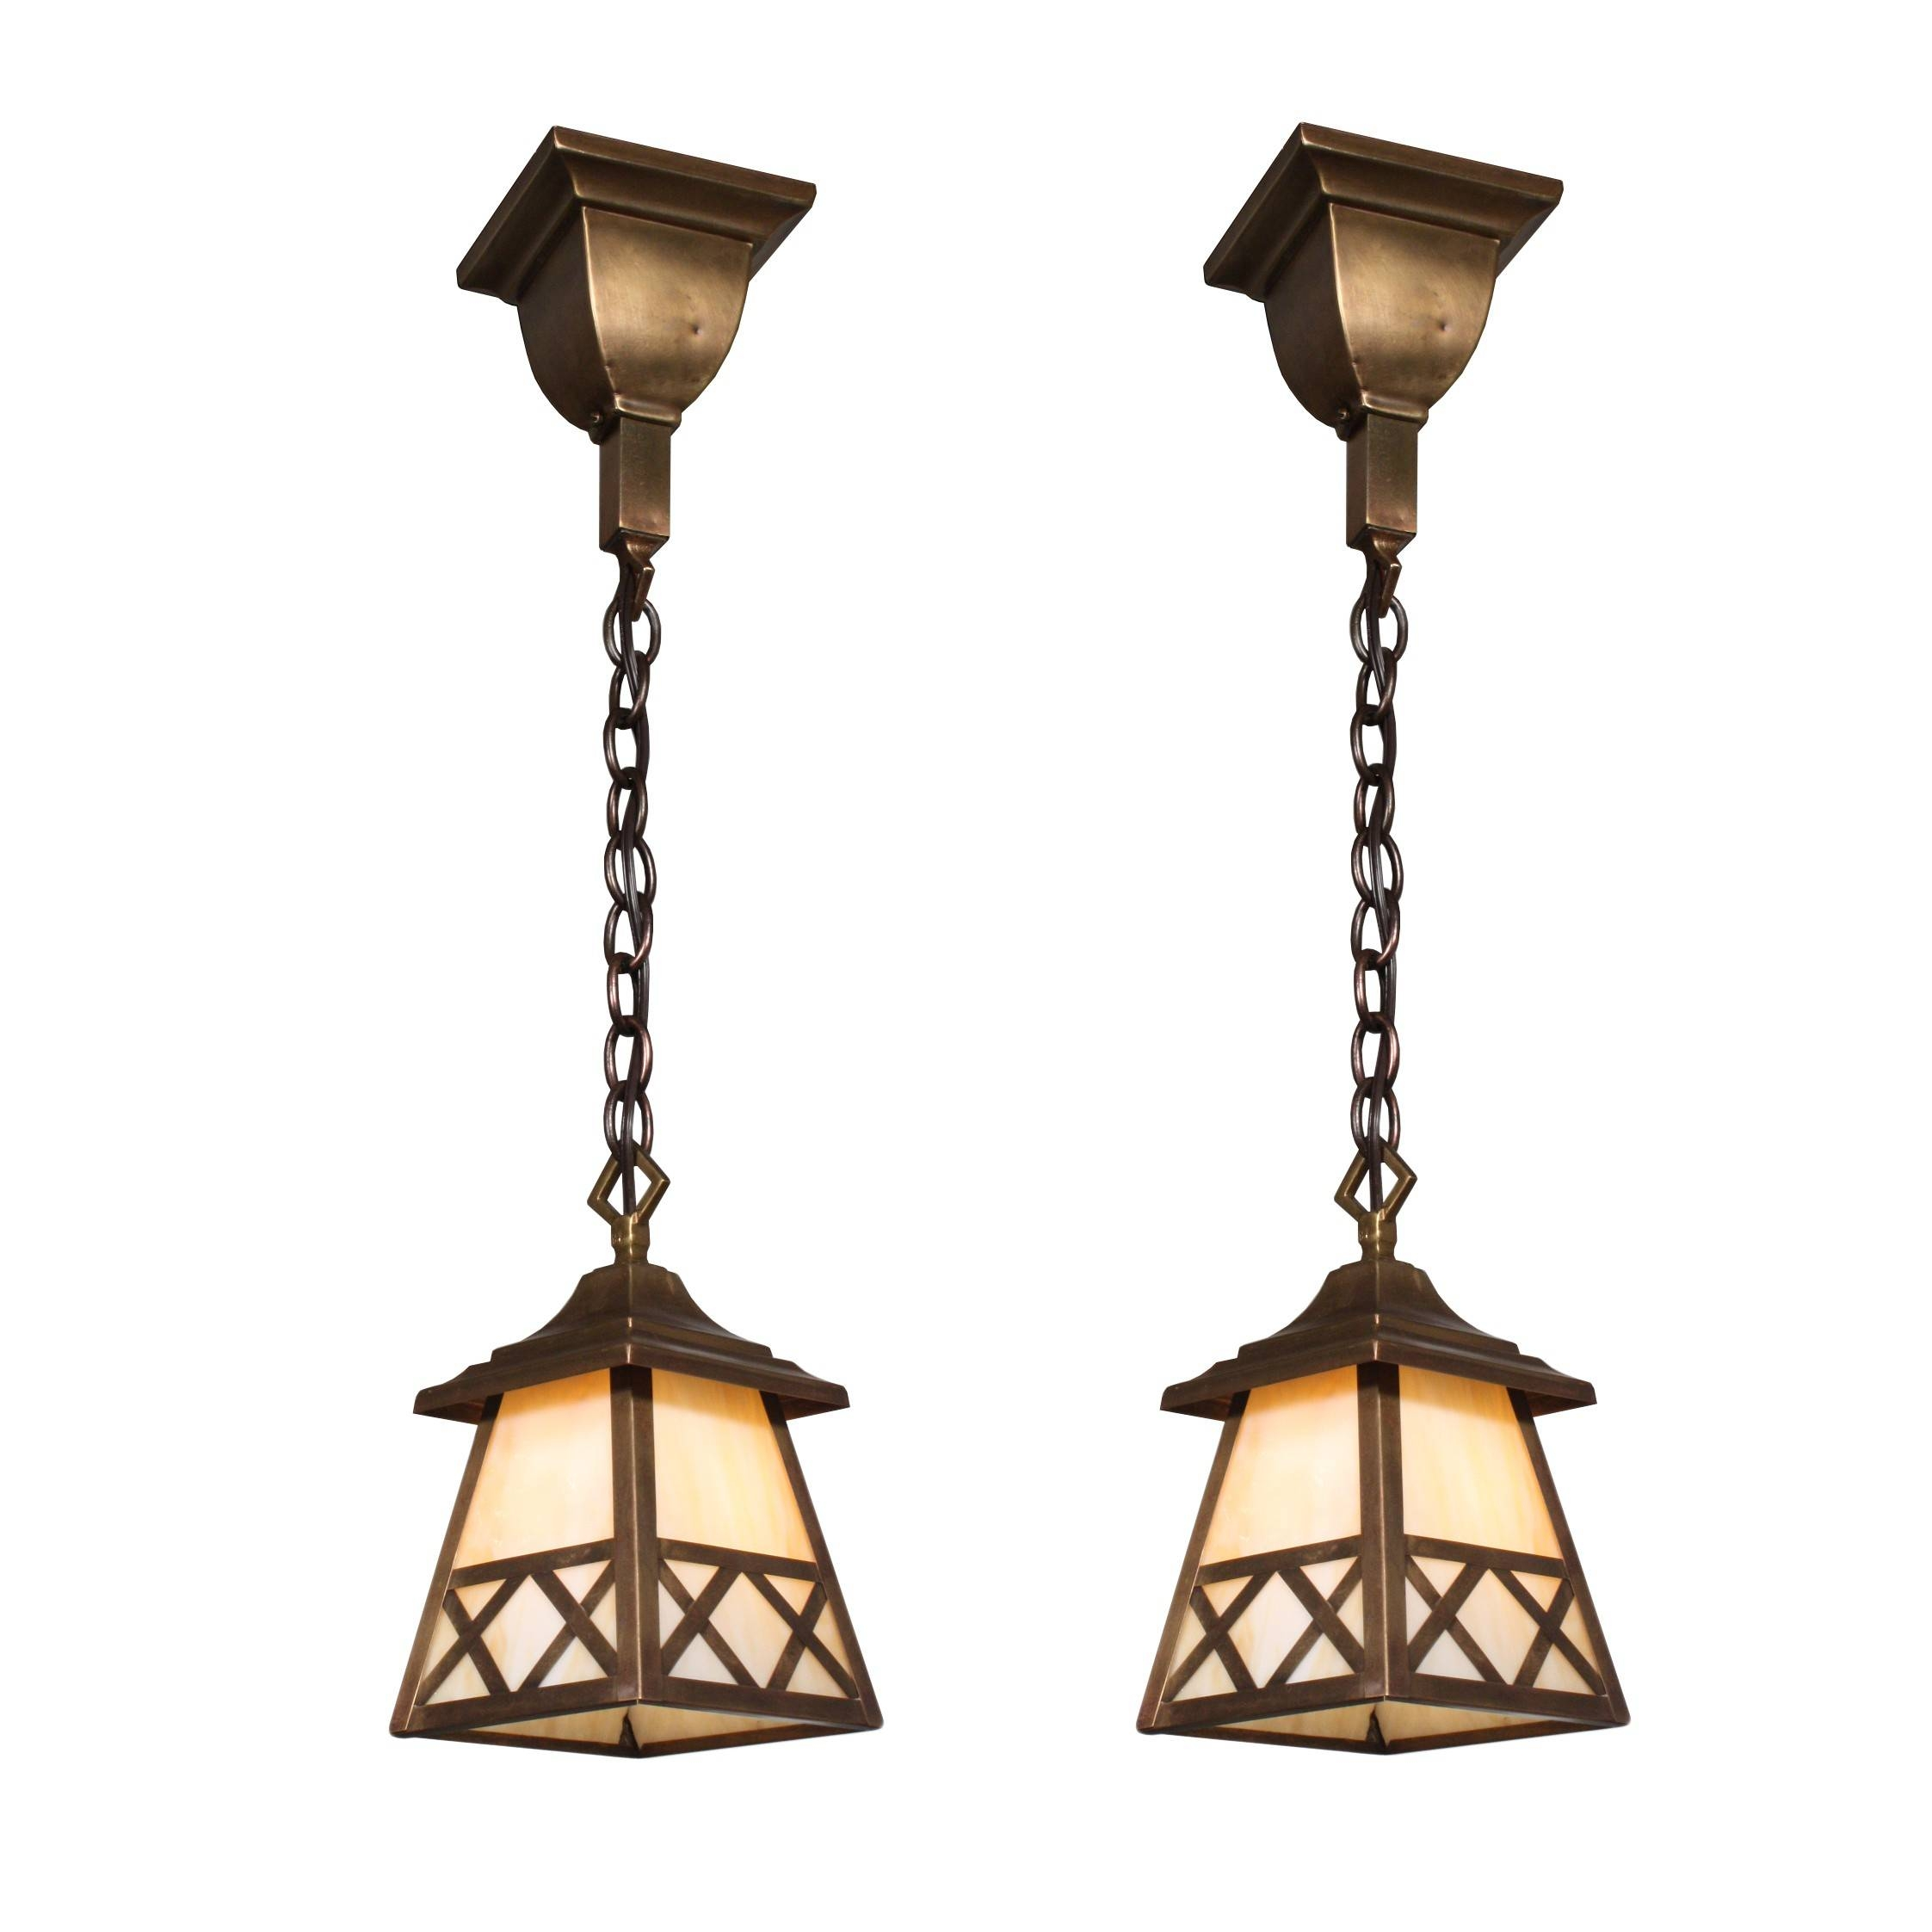 Charming Antique Arts & Crafts Lantern Pendant Lights, Original for Arts And Crafts Pendant Lighting (Image 7 of 15)